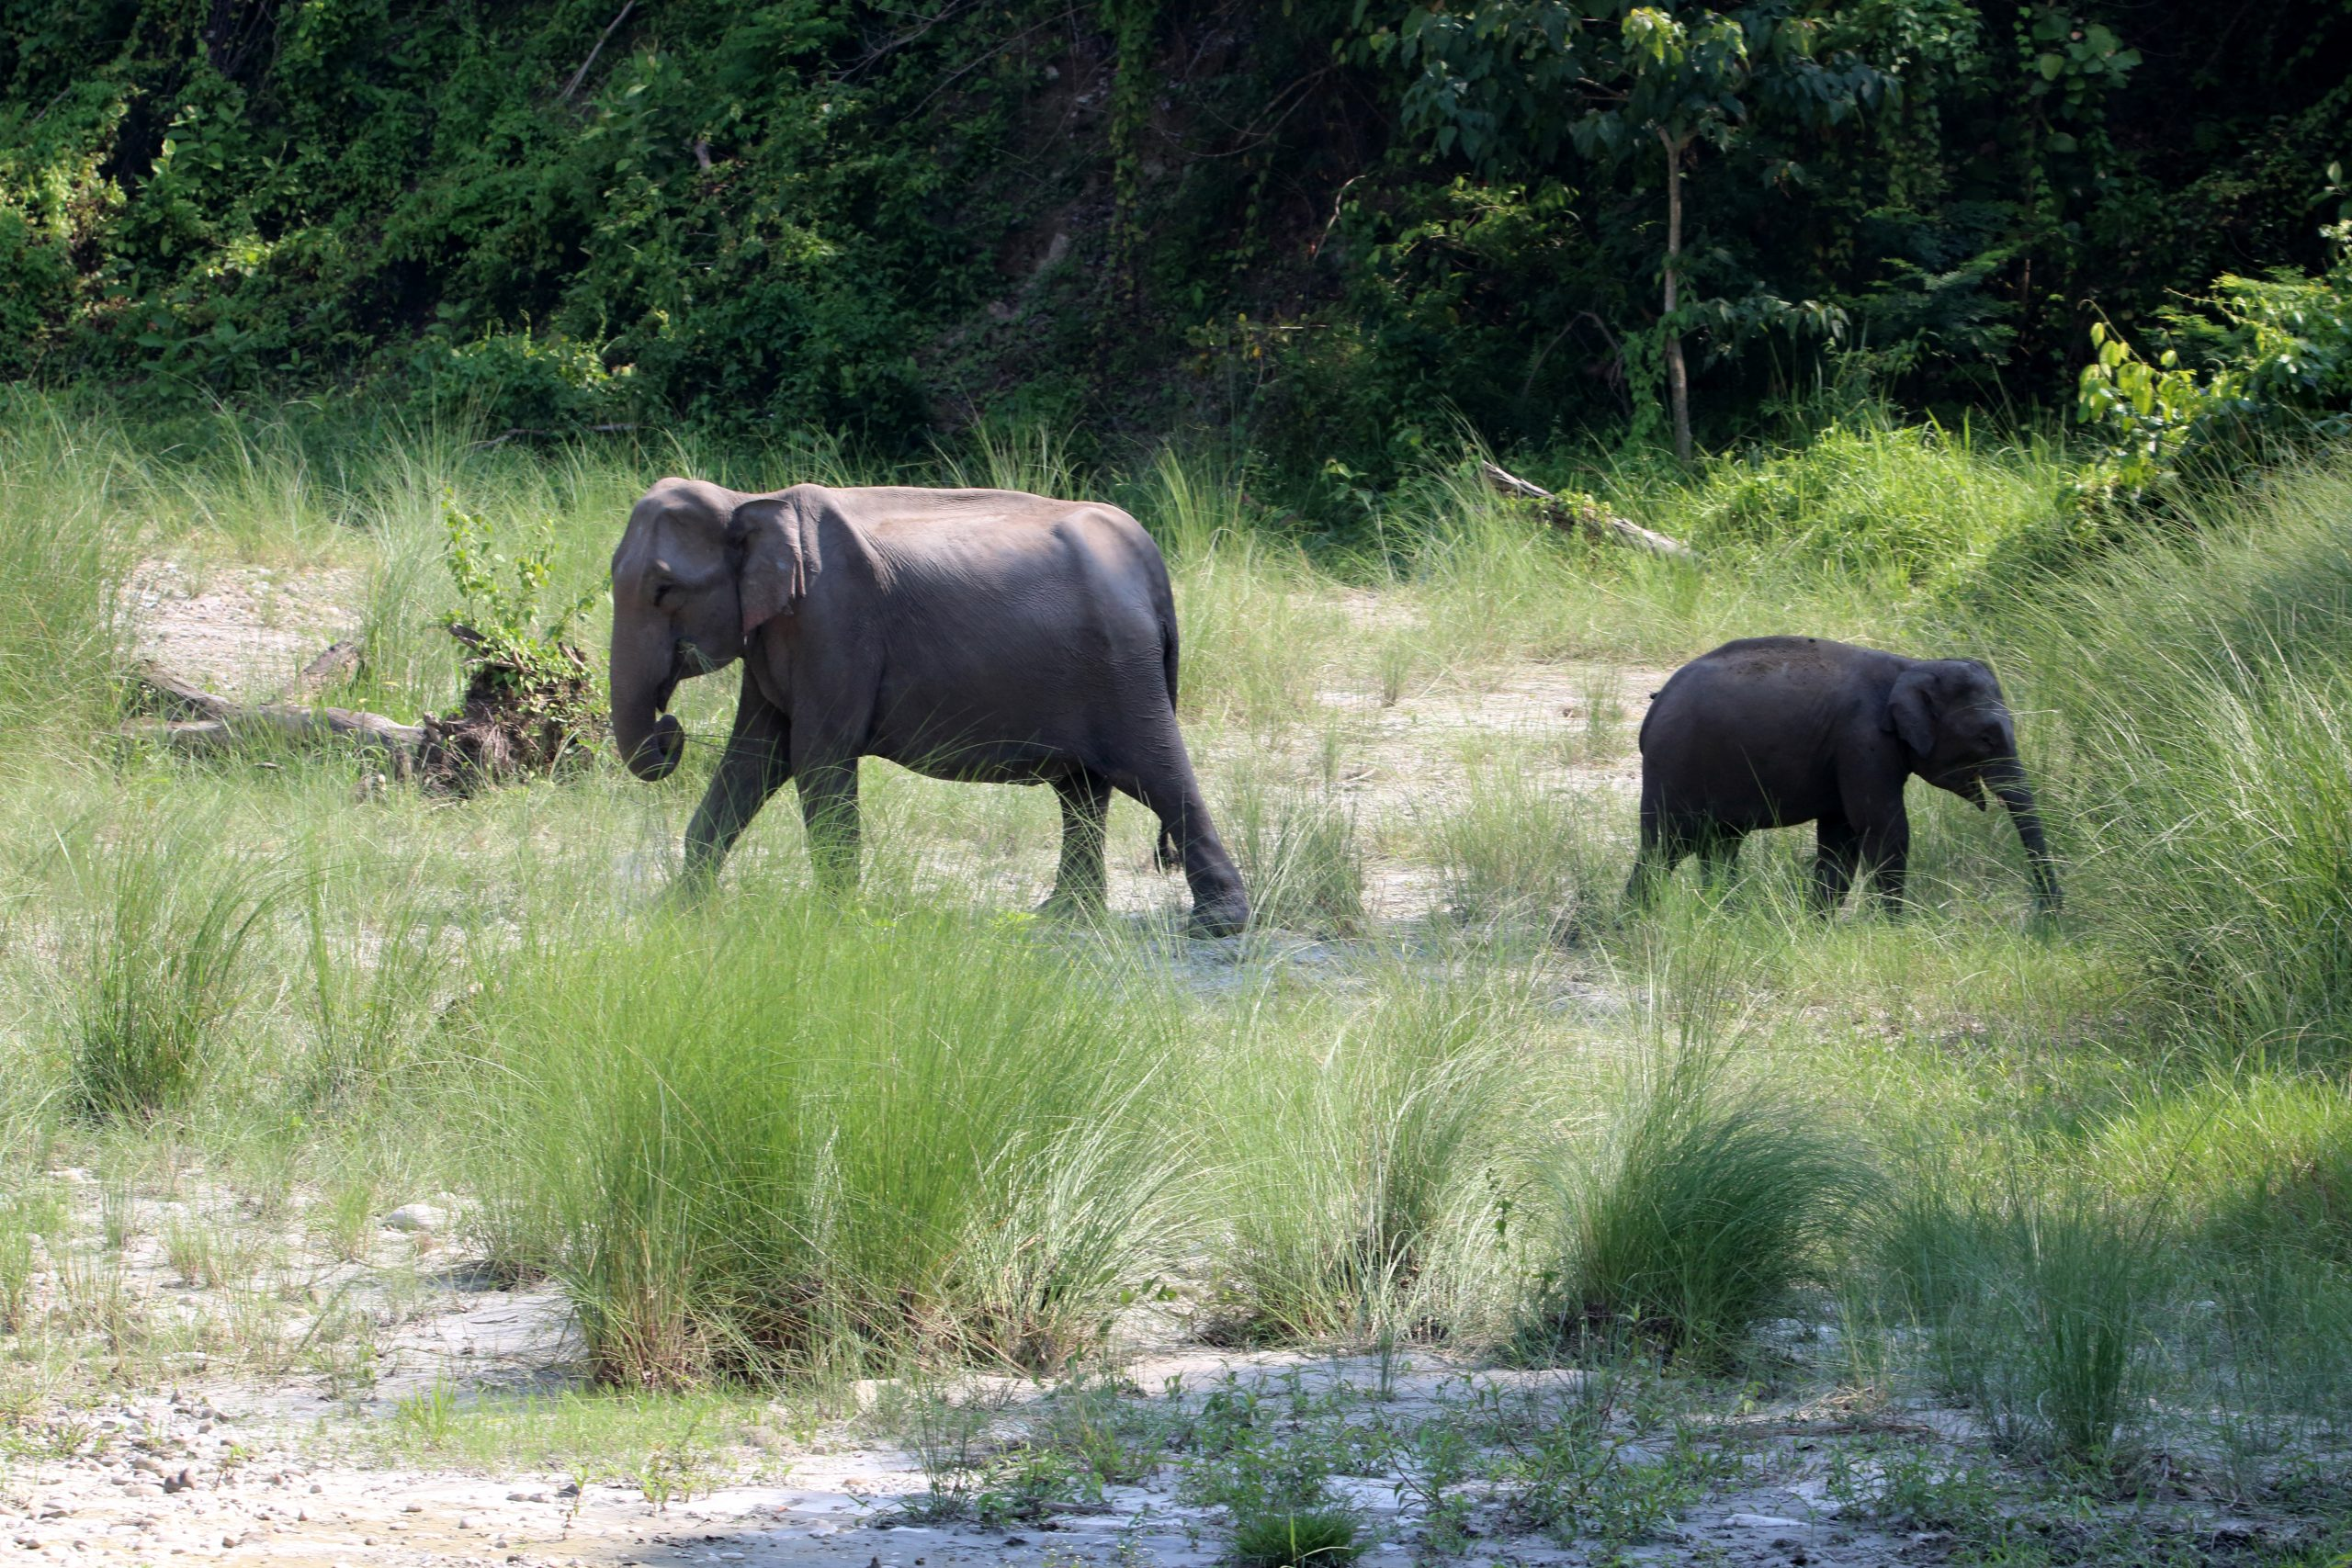 Mother elephant and baby elephant